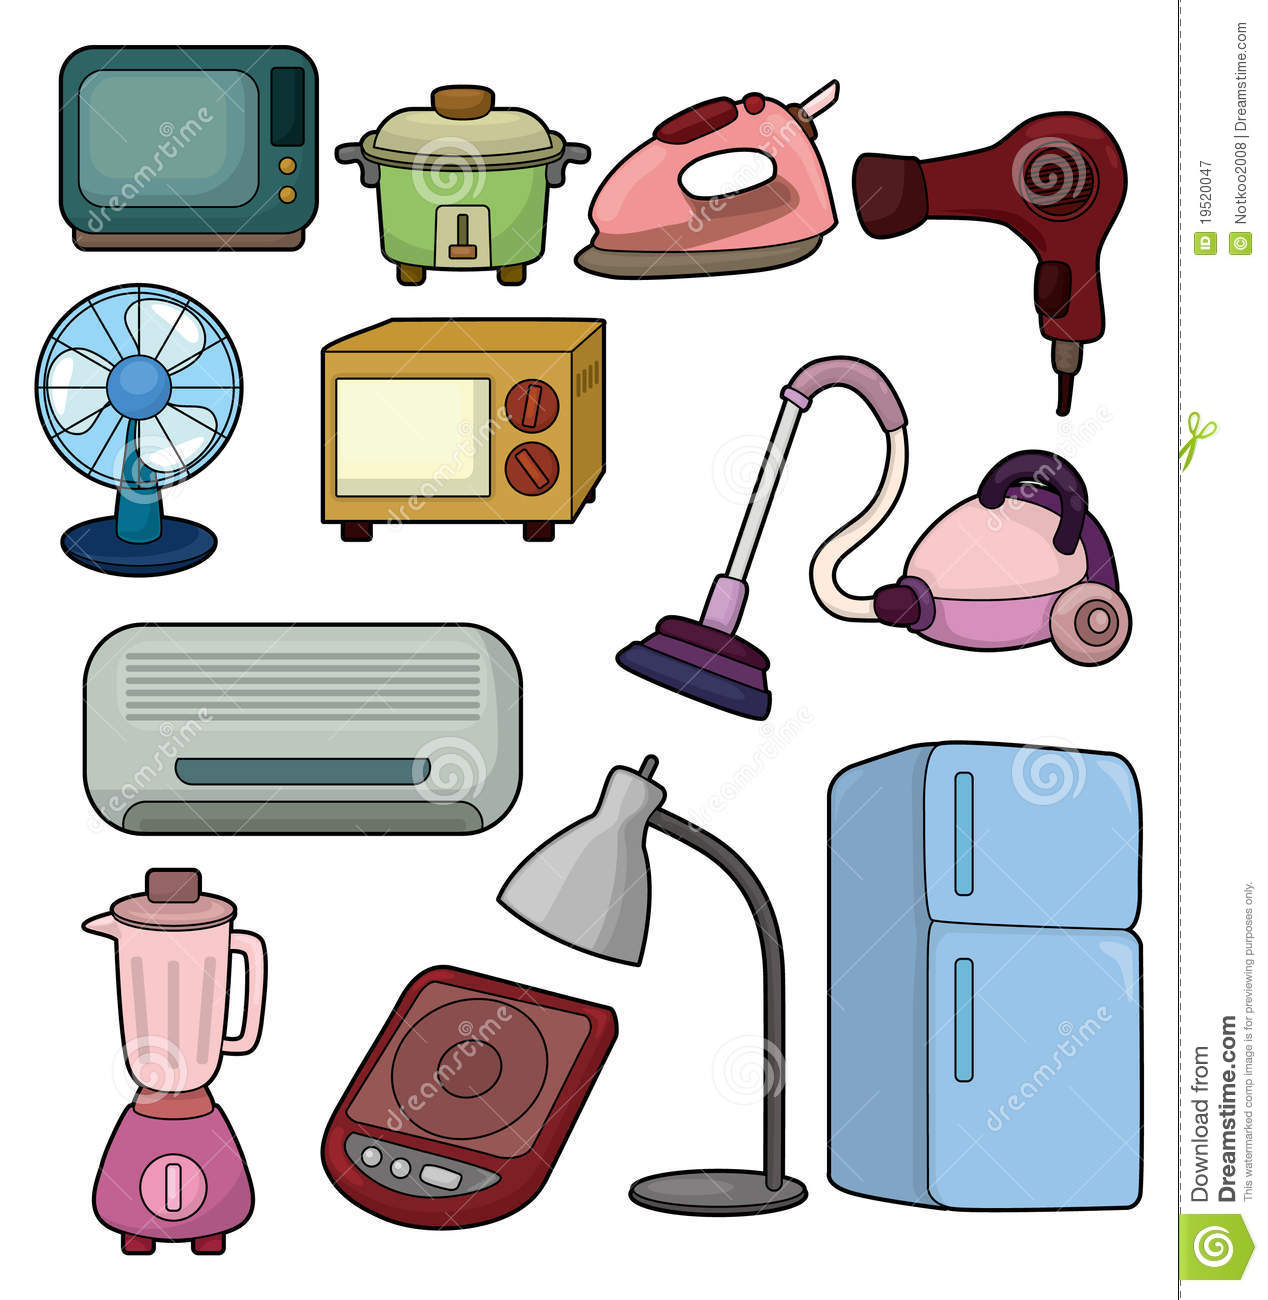 Cartoon Home Appliance Icon Royalty Free Stock Photography